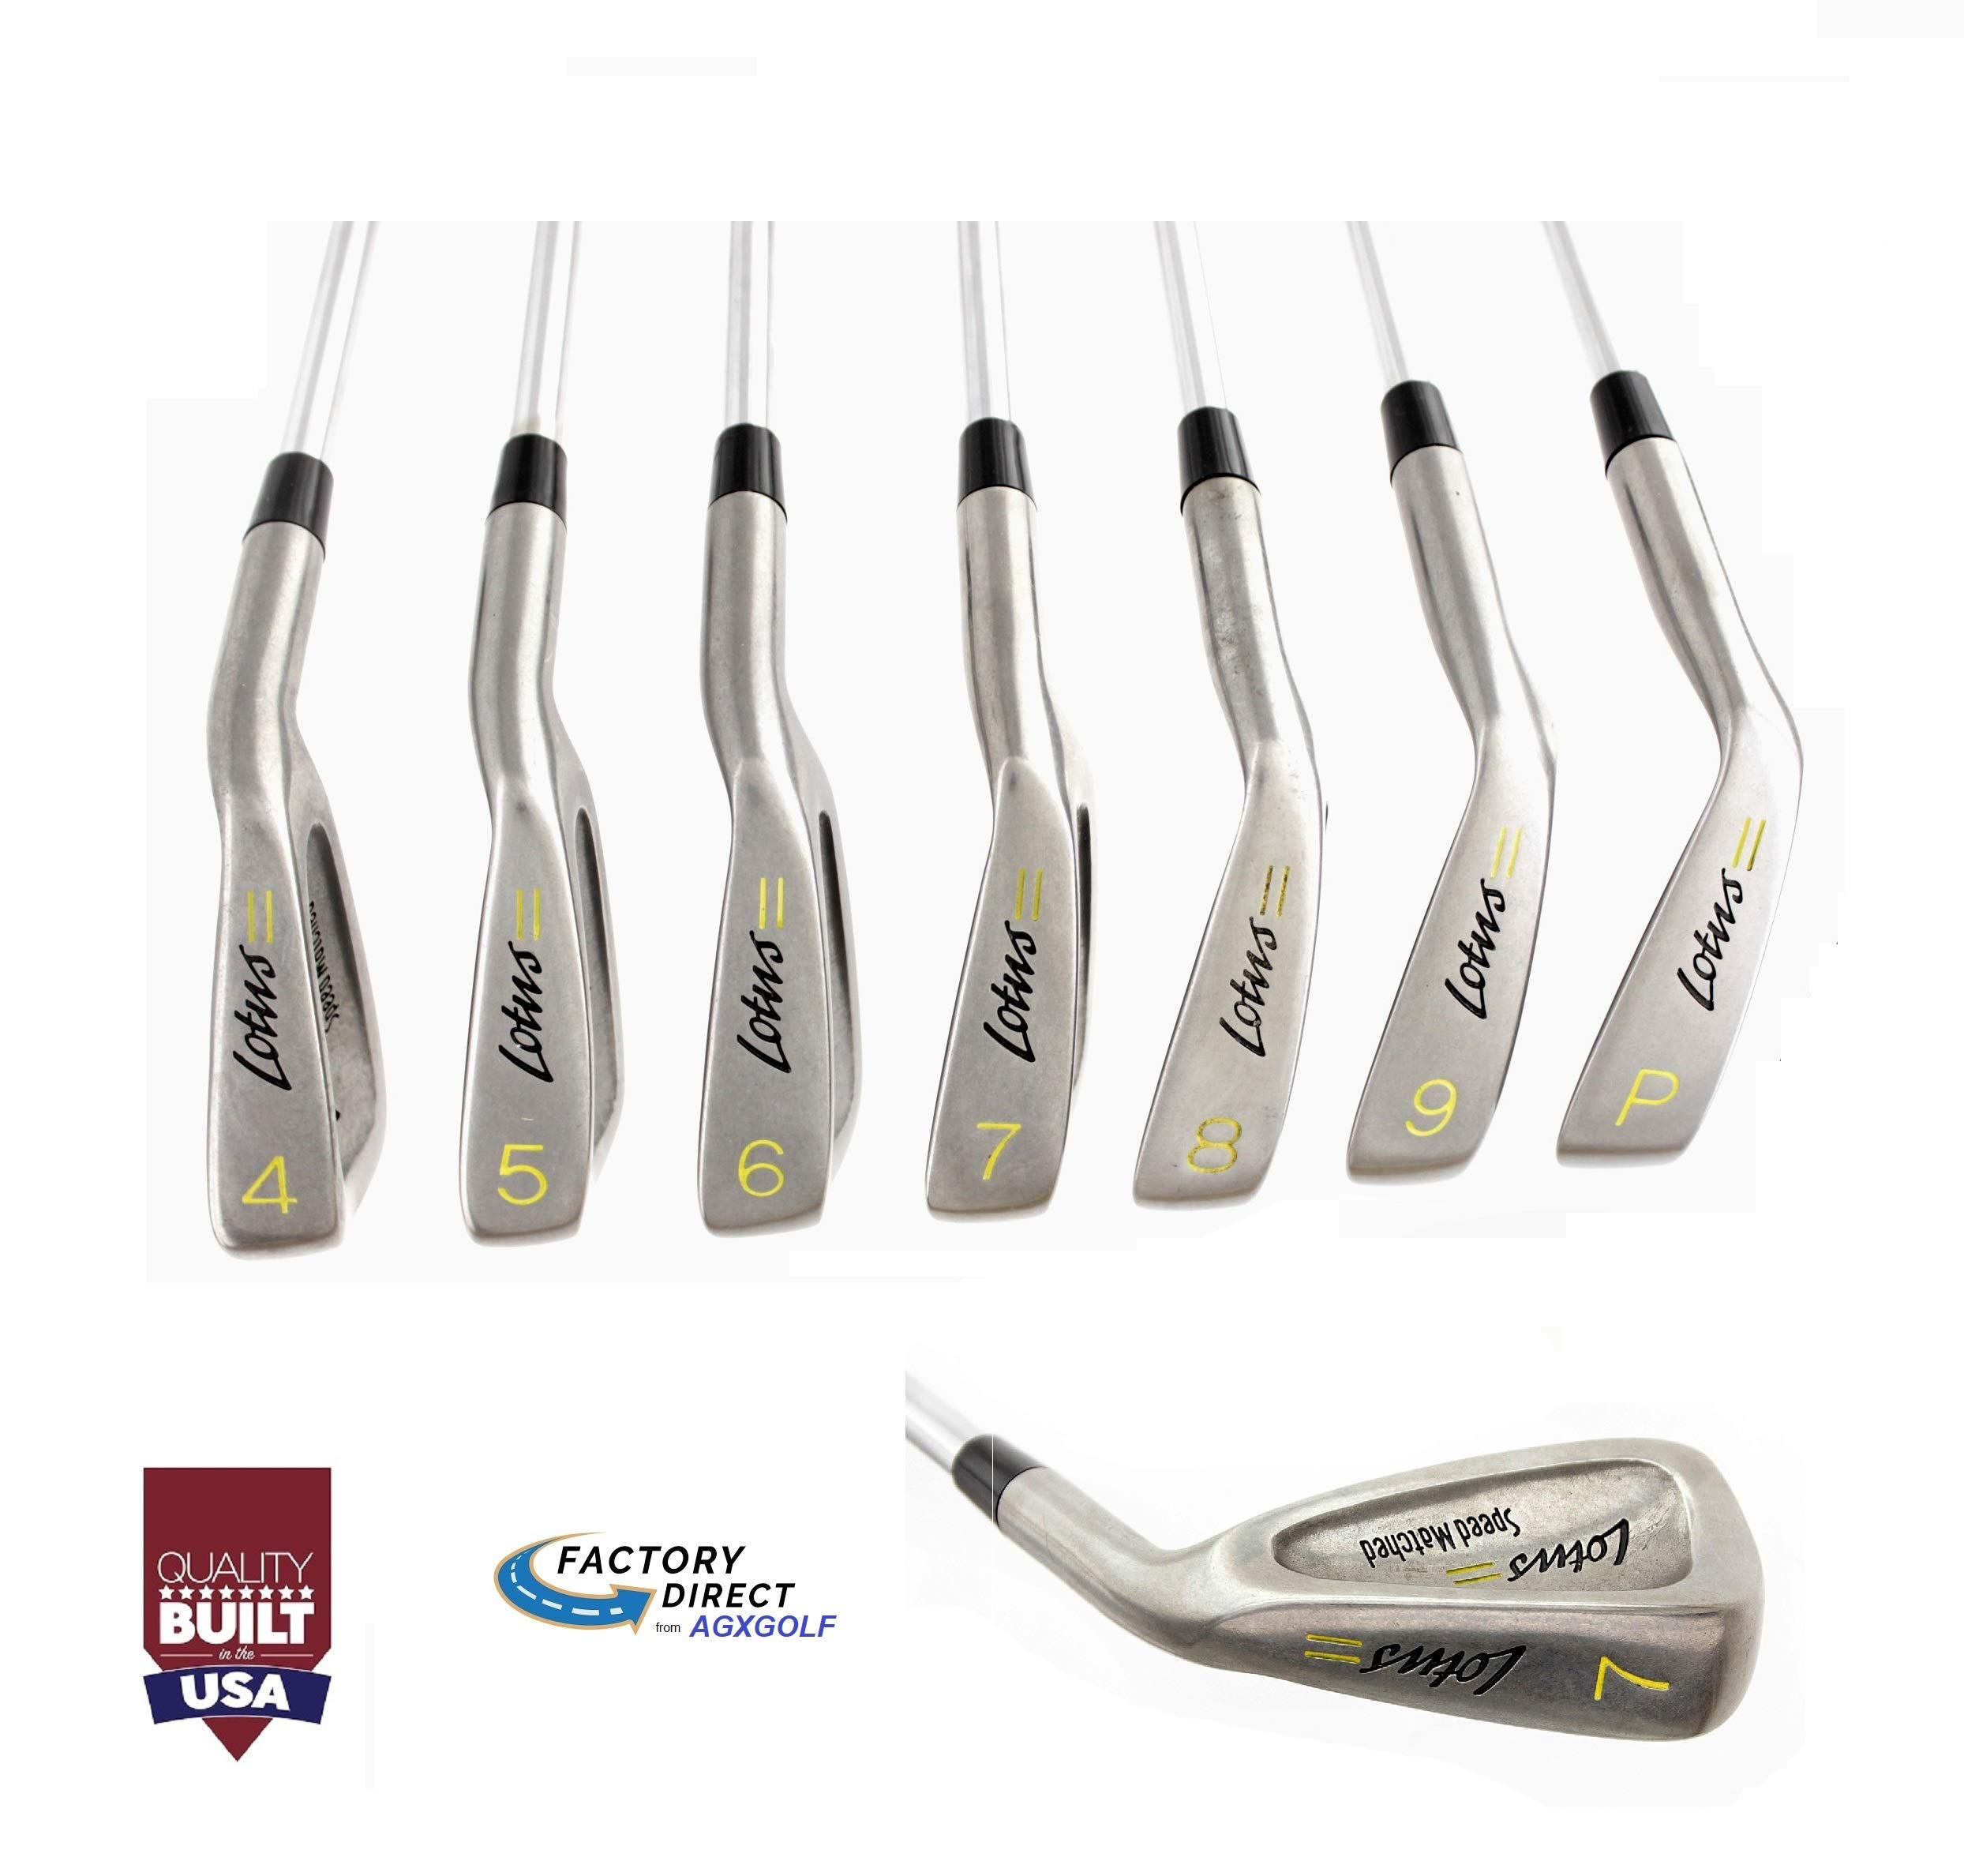 TaylorFit Ladies Right Hand Petite Length Lotus Series Irons Set w/Lady Flex Graphite Shafts: 4, 5, 6, 7, 8 & 9 Irons + Pitching Wedge; Built in The USA! by AGXGOLF